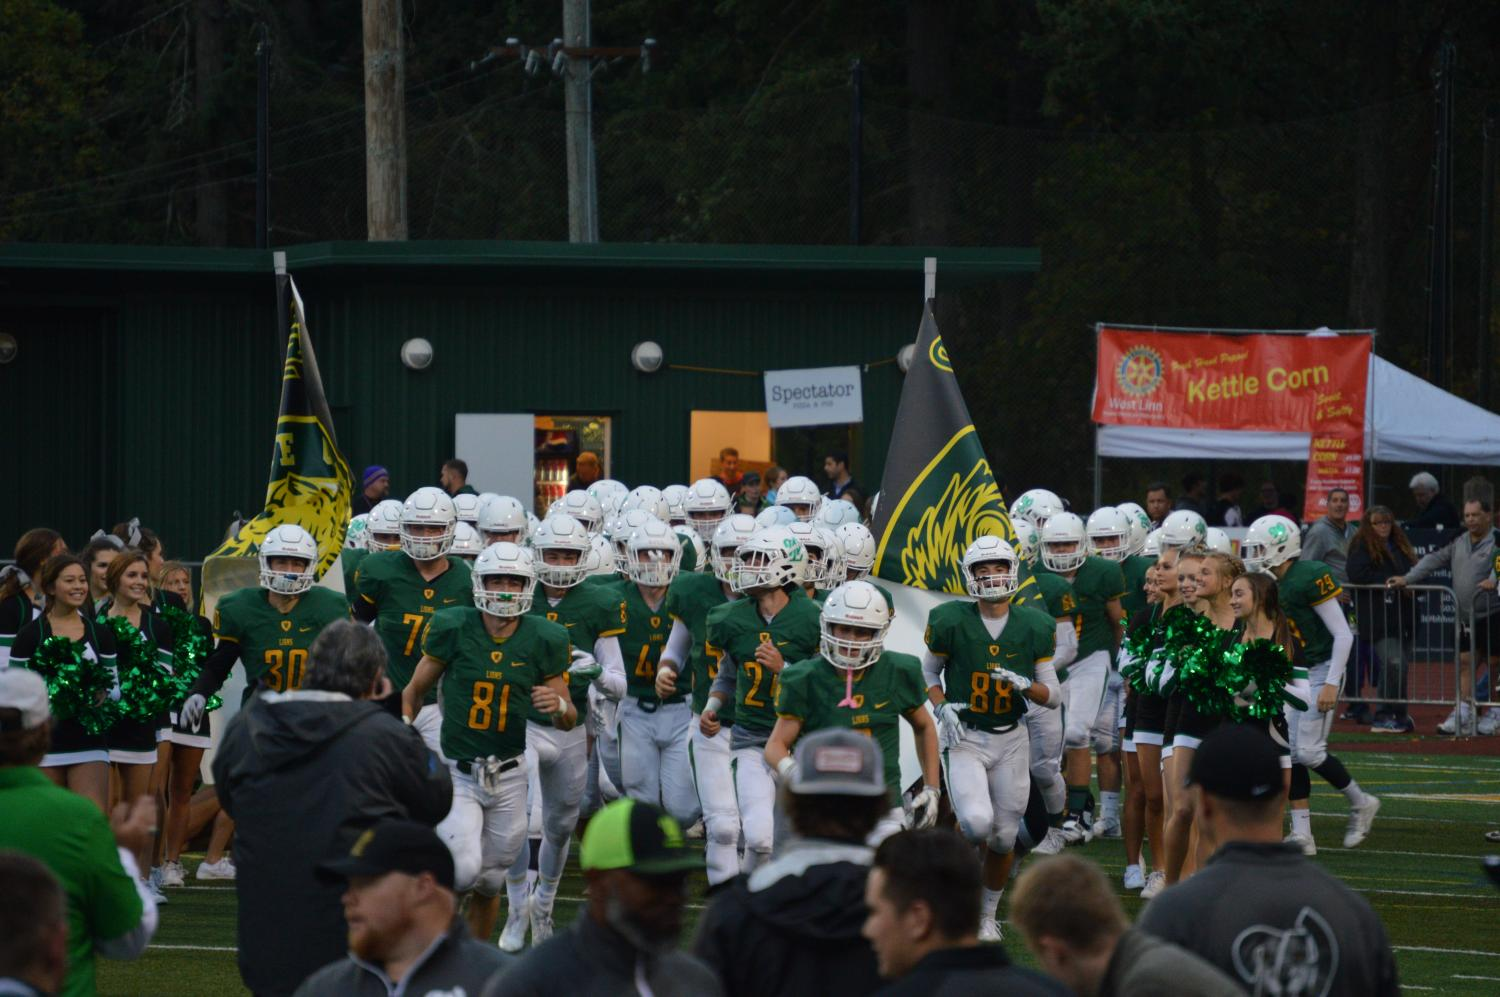 Before their blowout win against Tualatin, the team takes the field after their walk through the student section. Following the dominant victory, West Linn moves to 4-0 on the season (2-0 Three Rivers League) and Tualatin falls to 1-3 (1-1 Three Rivers League).